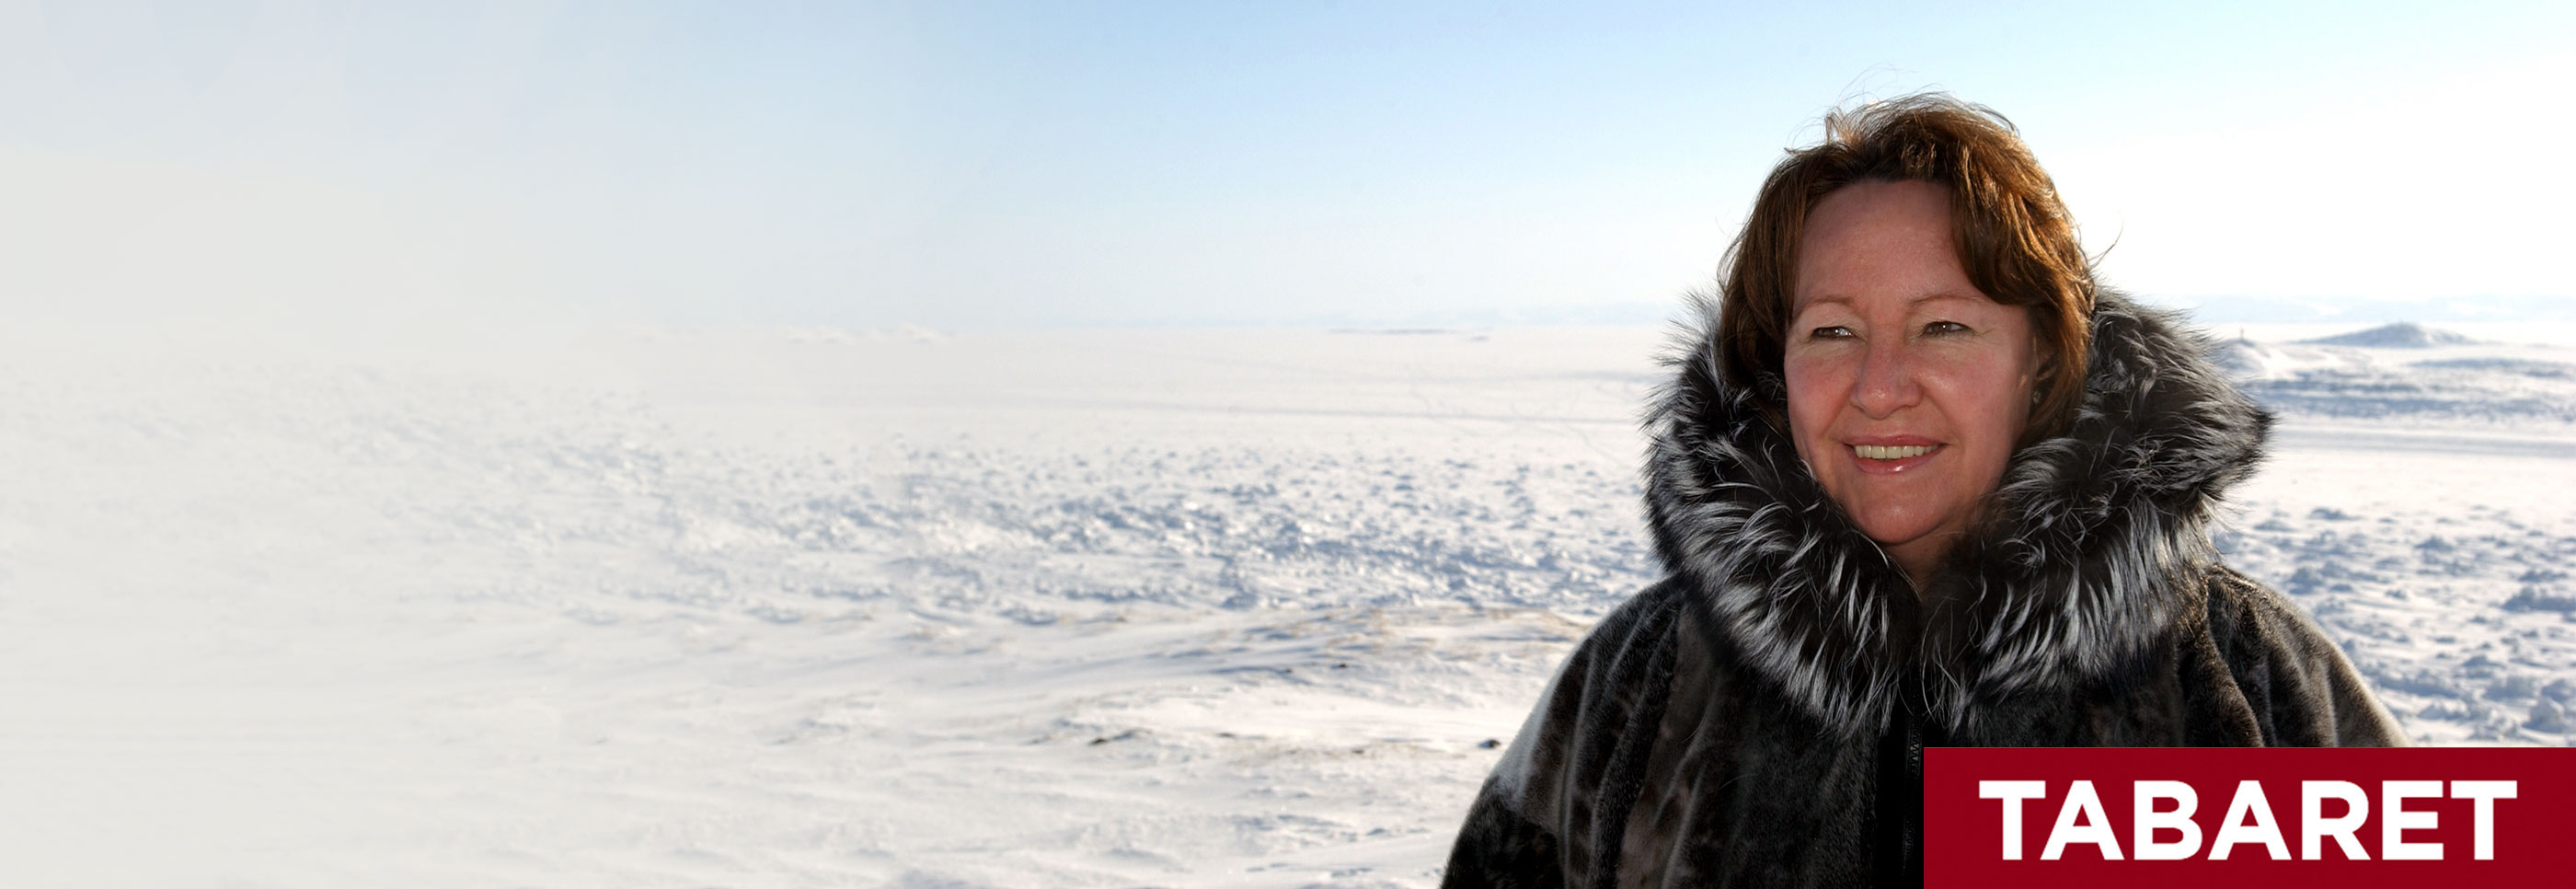 Sheila Watt-Cloutier wearing a fur-lined parka stands smiling in a snow-covered Arctic landscape